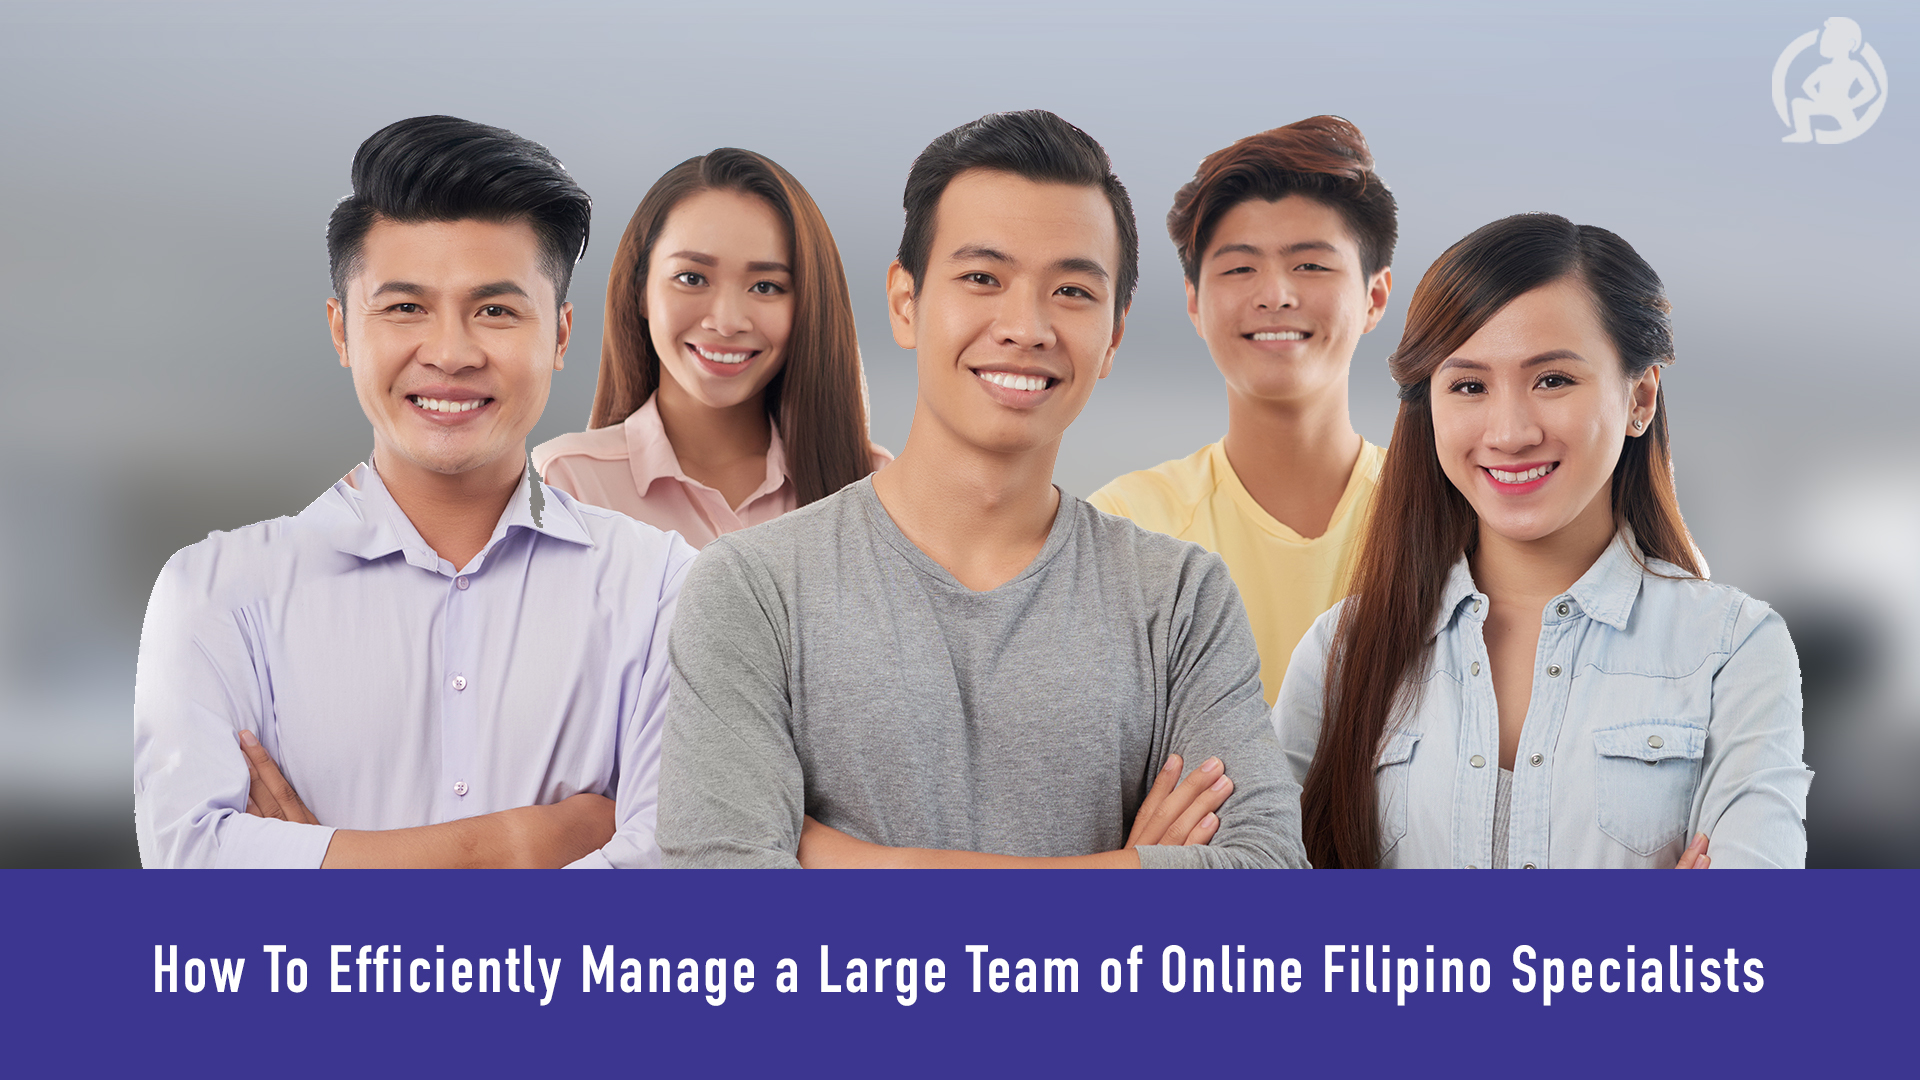 How To Efficiently Manage a Large Team of Online Filipino Specialists